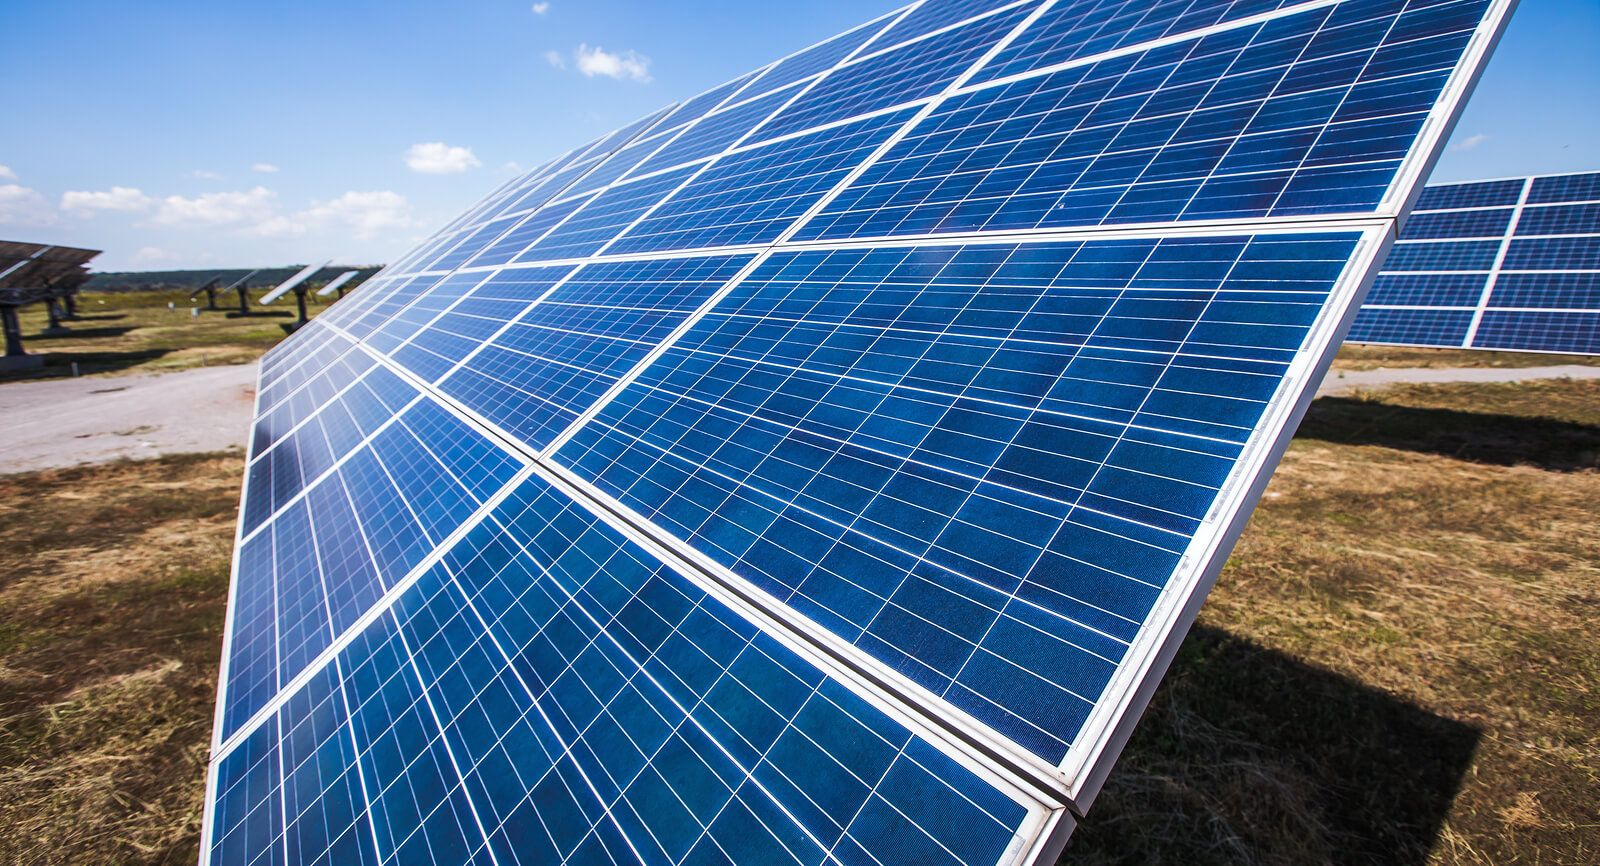 The Government Of Uganda Has Announced The Completion Of 24mw Kabulasoke Solar Power Park Its The First Of Its Kind In The Power Plant Solar Power Plant Solar